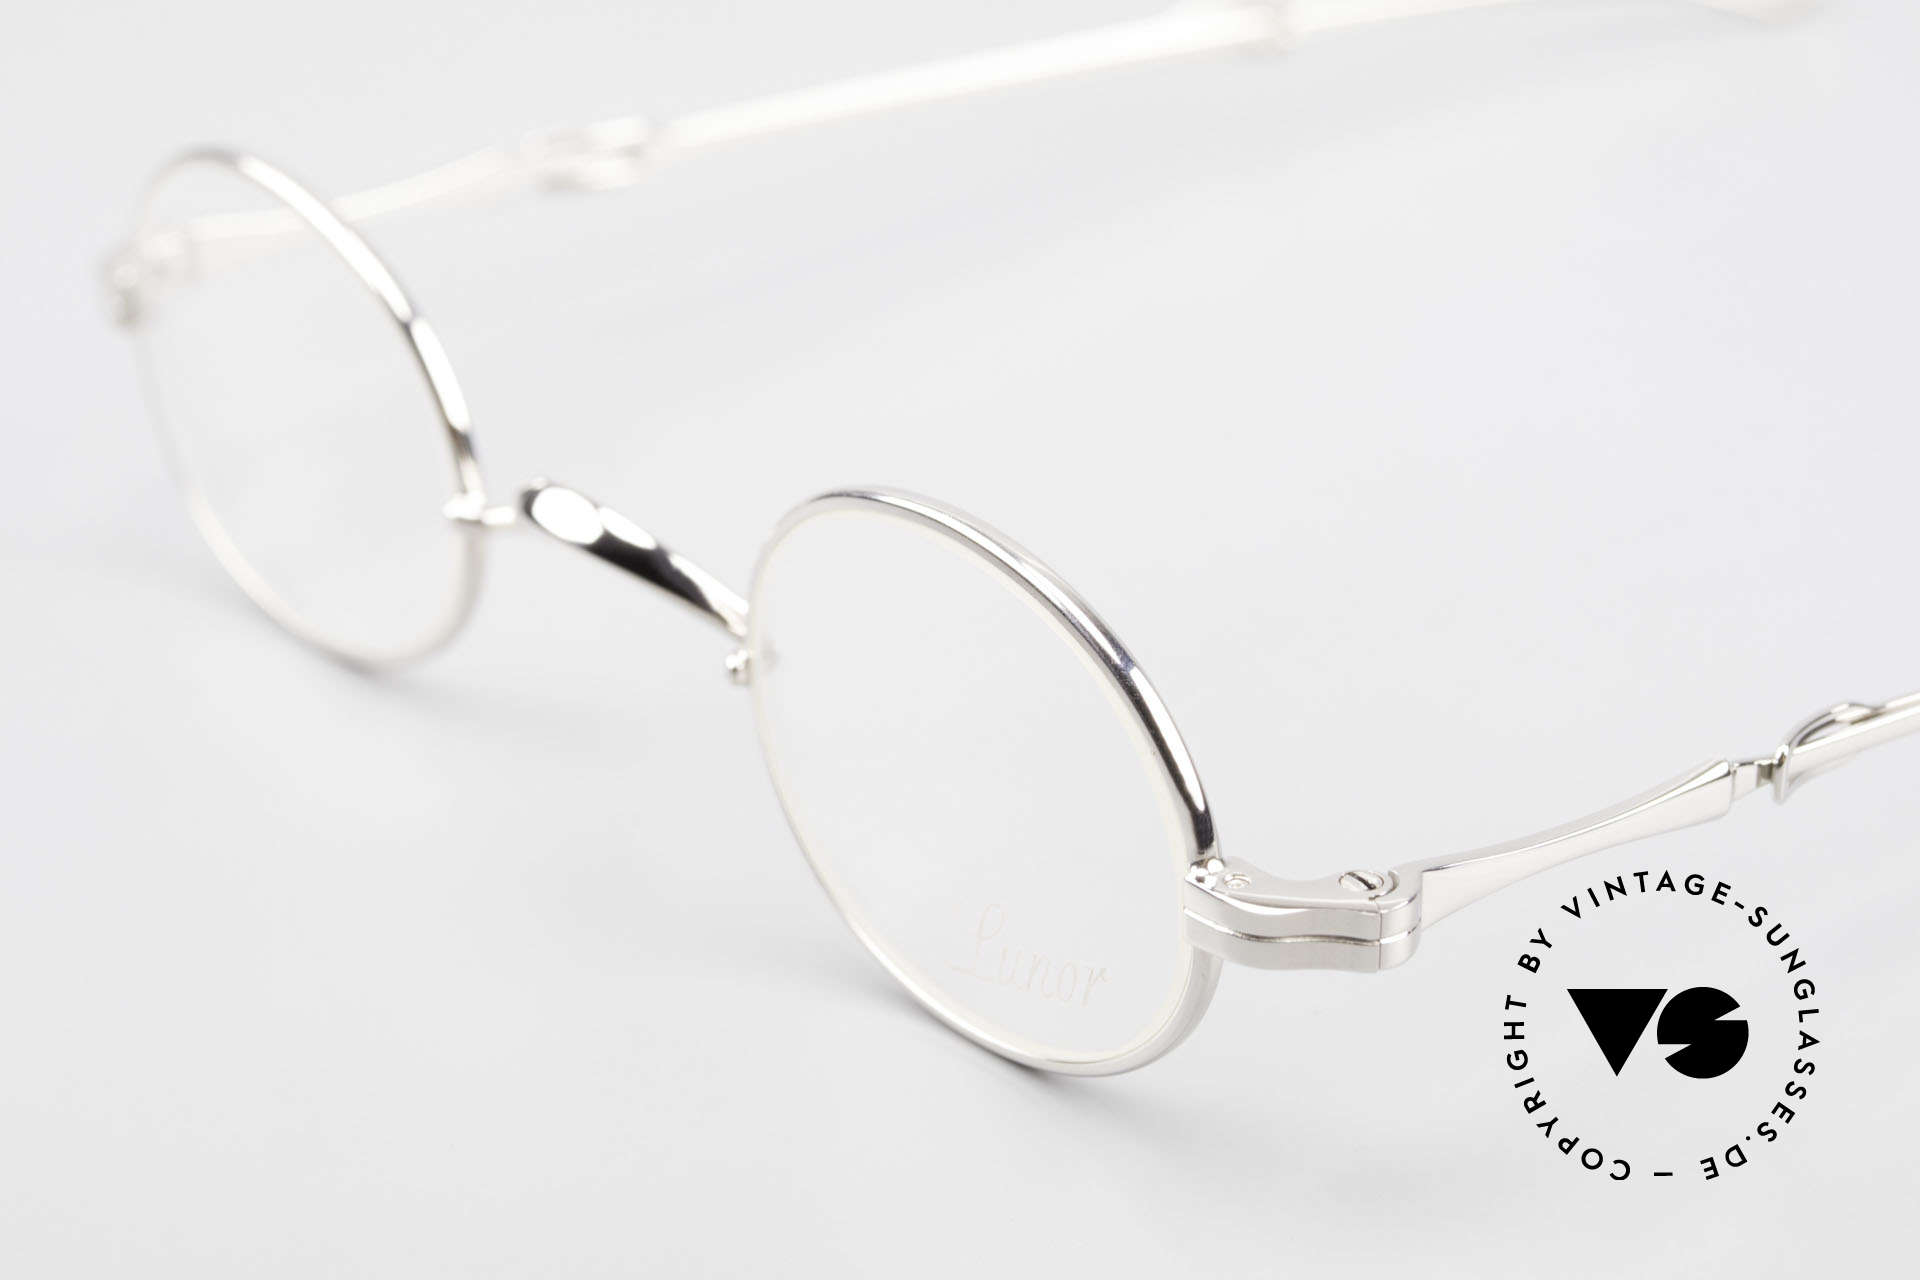 Lunor I 04 Telescopic Oval XS Glasses Slide Temples, as well as for the brilliant telescopic / extendable arms, Made for Men and Women